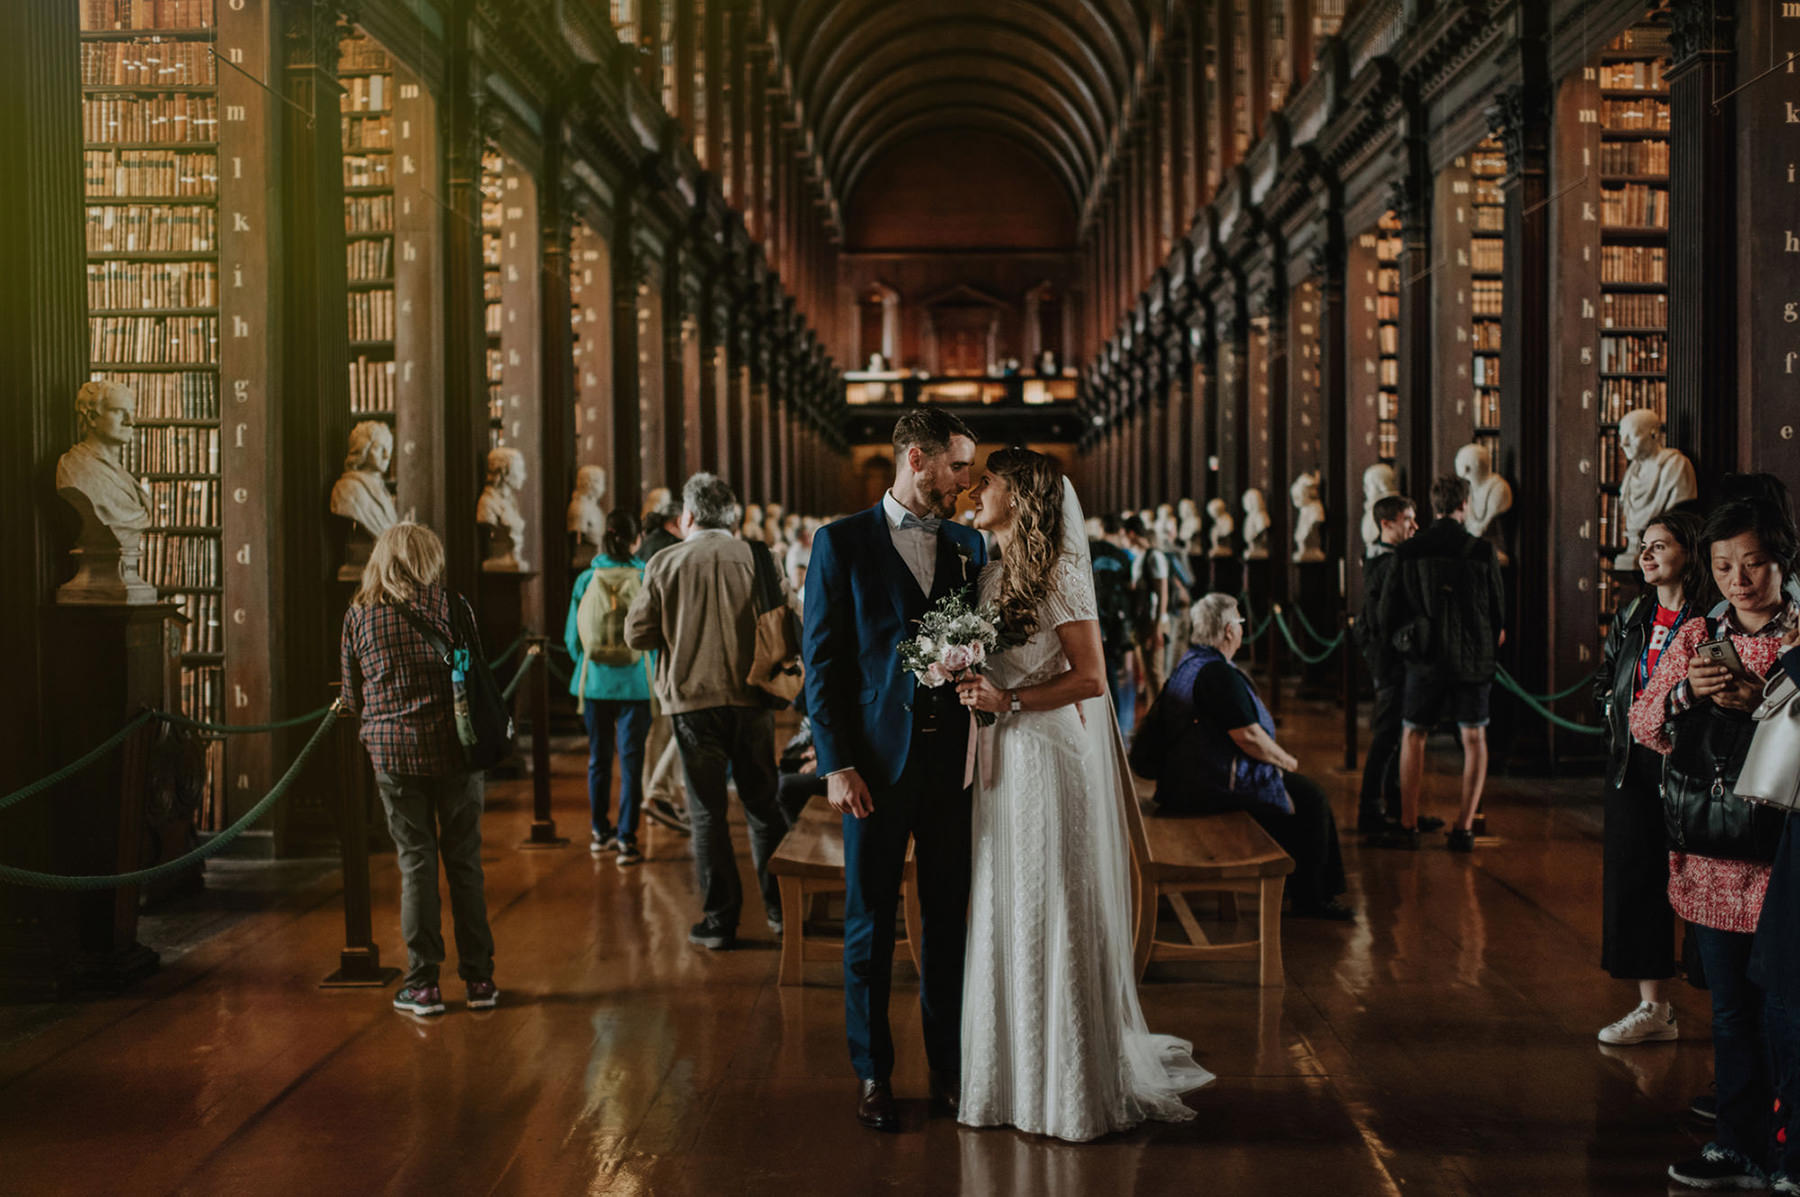 Wedding ceremony in Trinity College. Main entrance to trinity Chapel